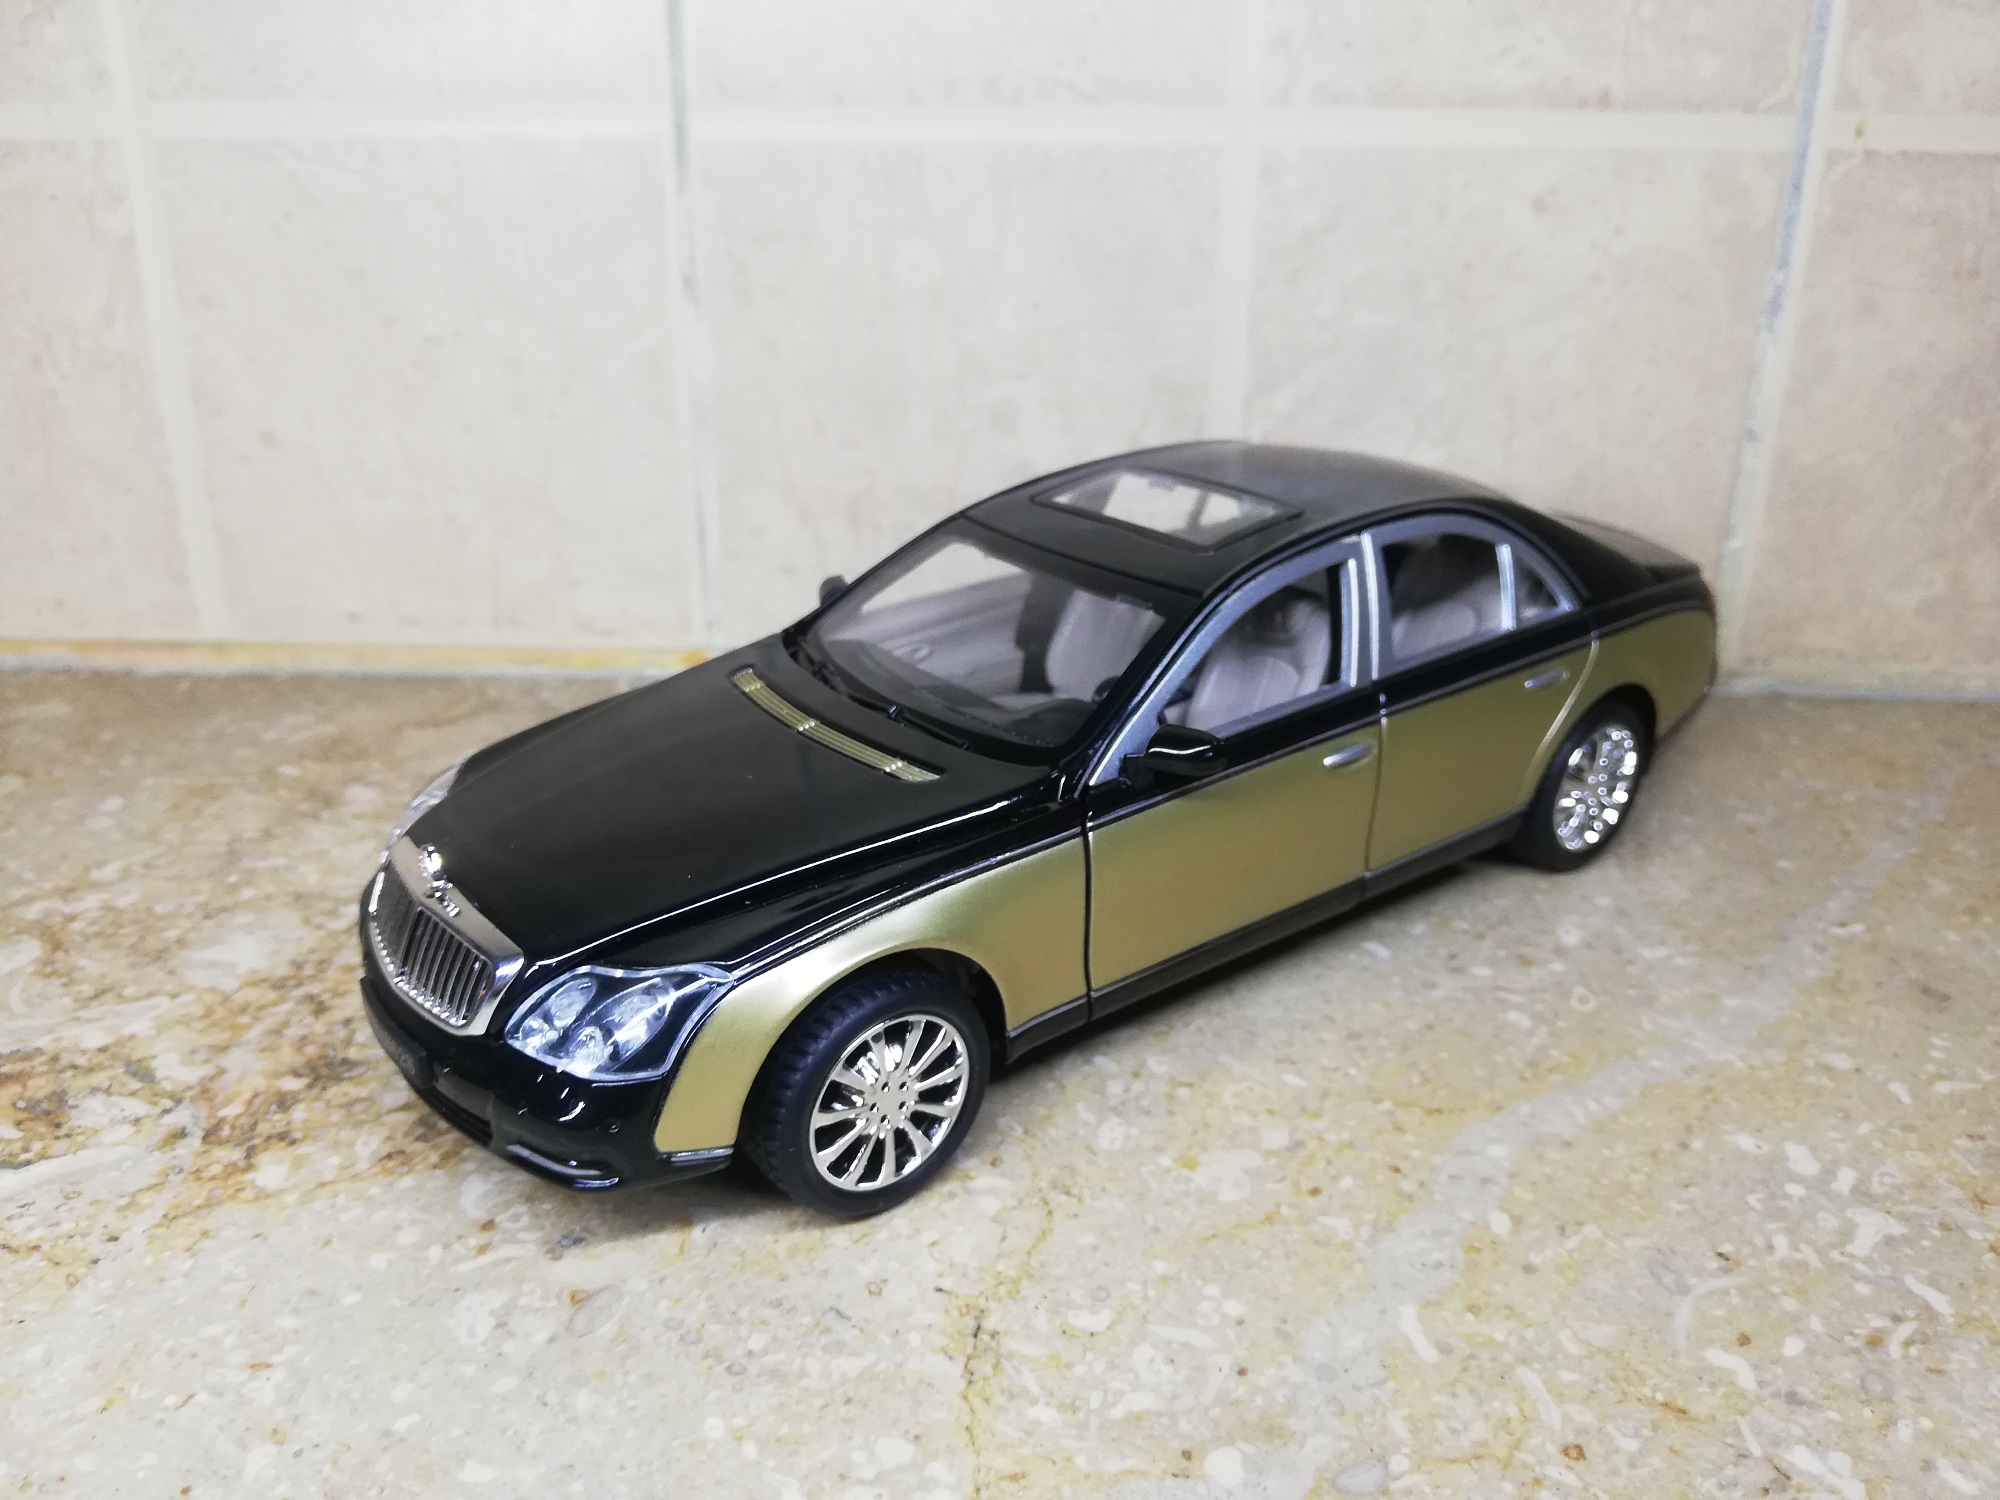 Mercedes Maybach 62s 2003 1:24 XLG M929H DieCast Metal Model Cars Collectable Alloy Luxury Toy Car 8 inch Golden Silver Mercedez maybatch